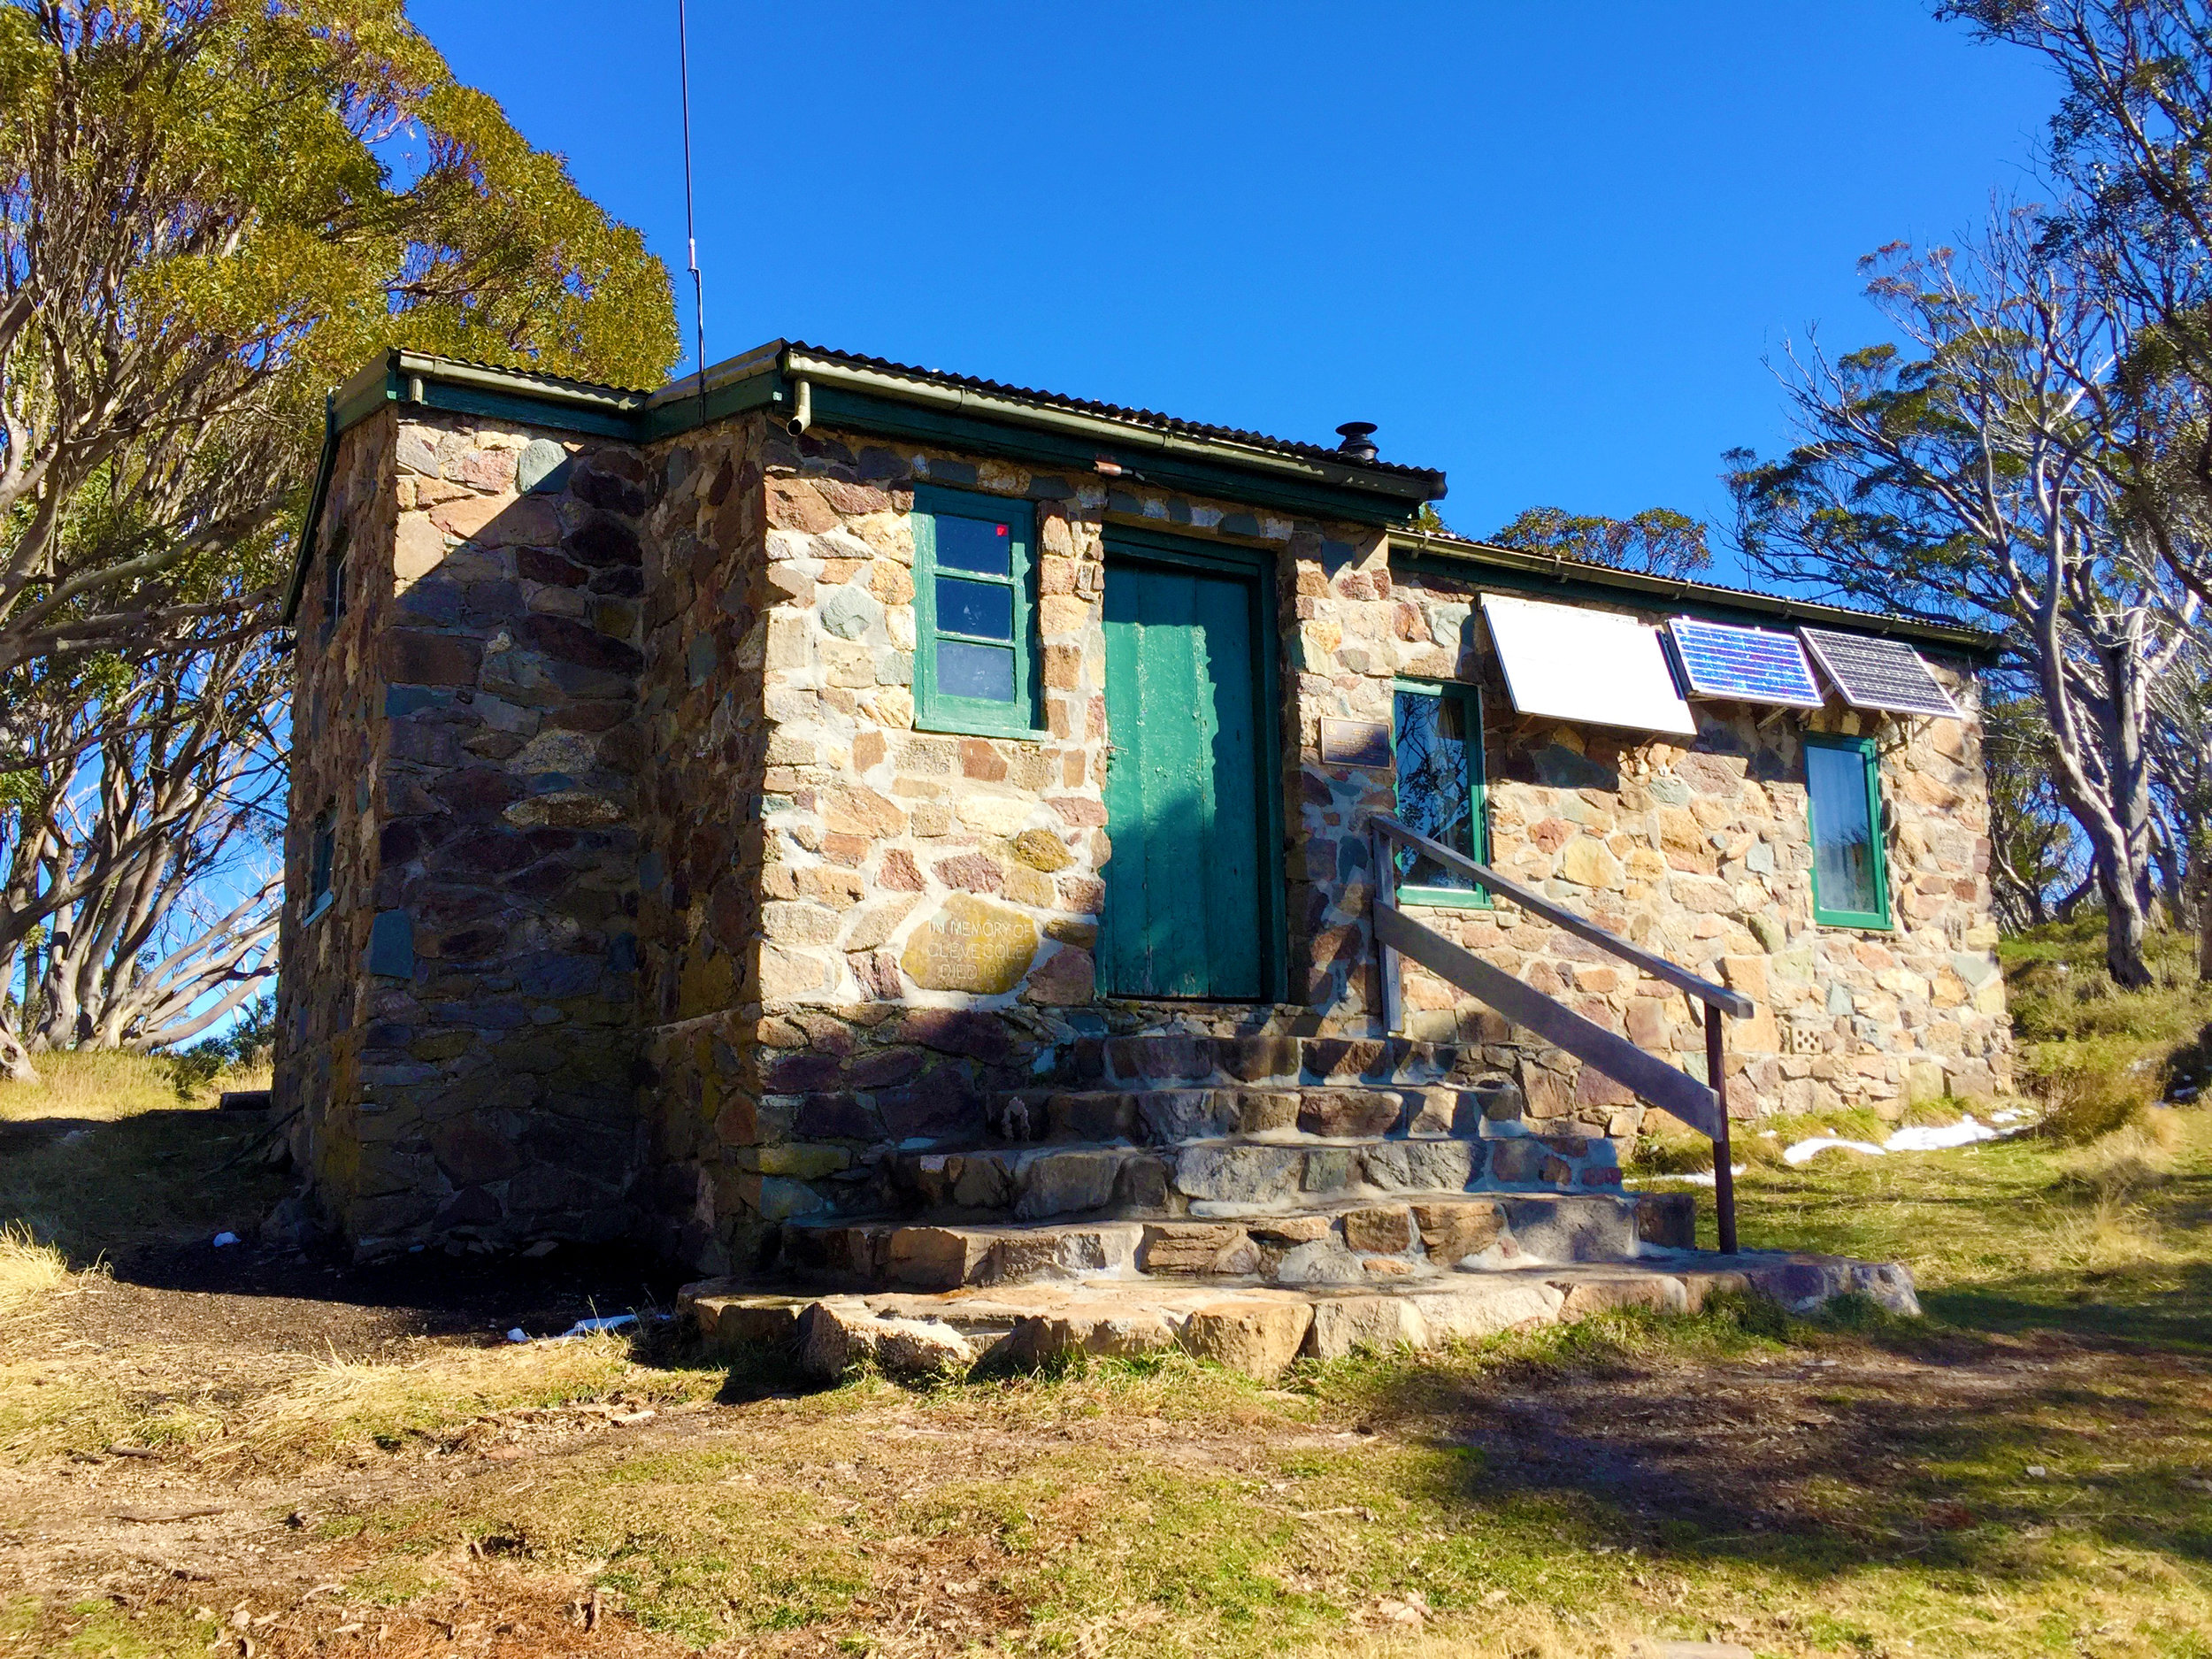 Cleve Cole Memorial Hut